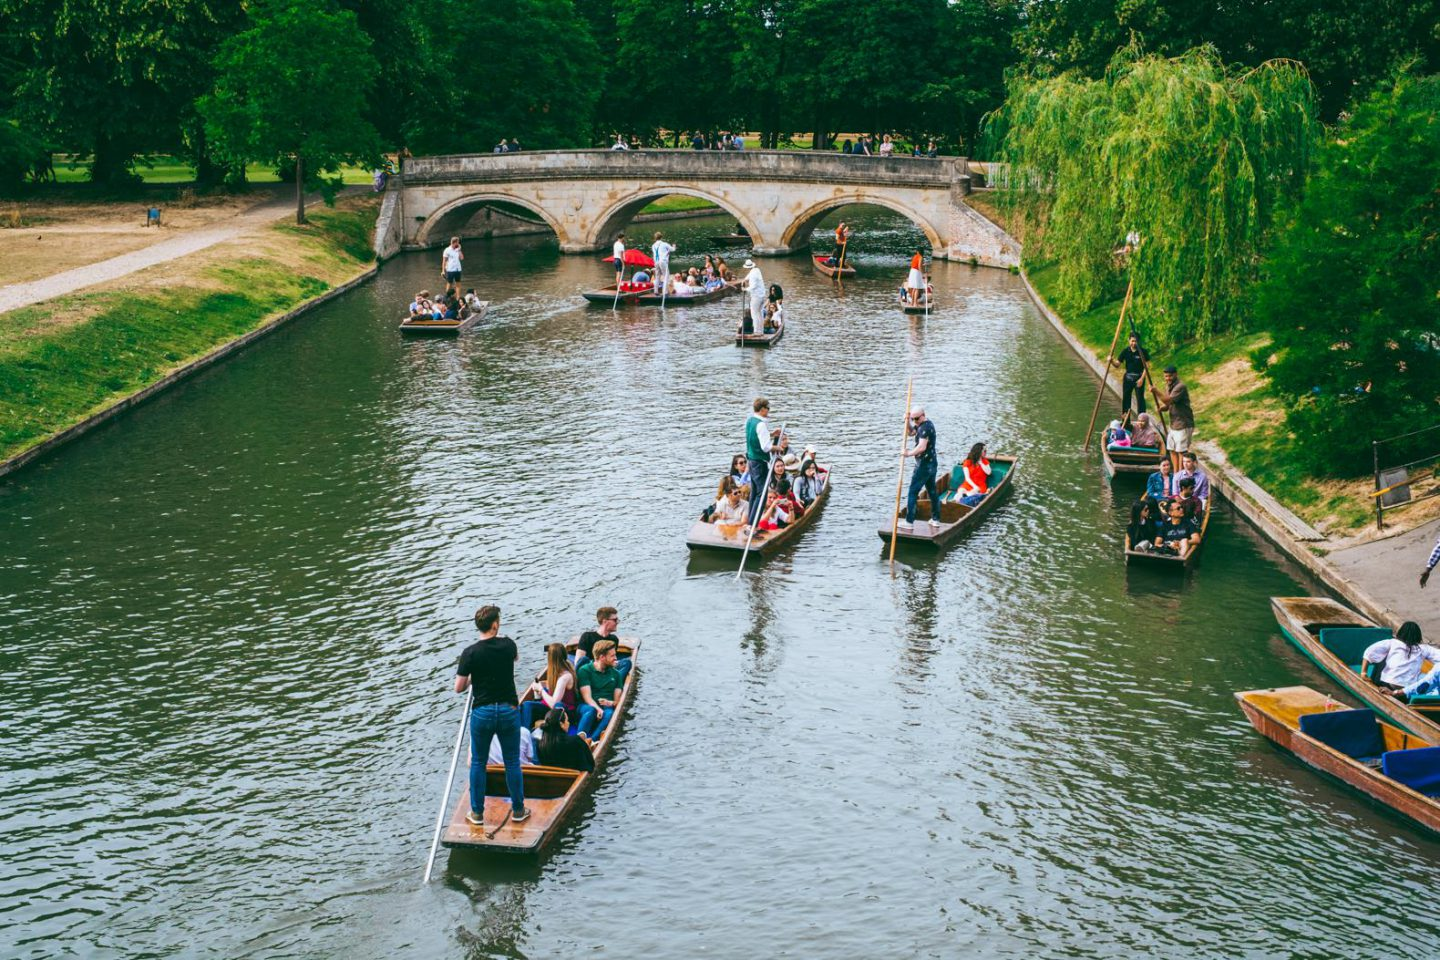 Days out in the UK: Cambridge, the city of cycles and college spires